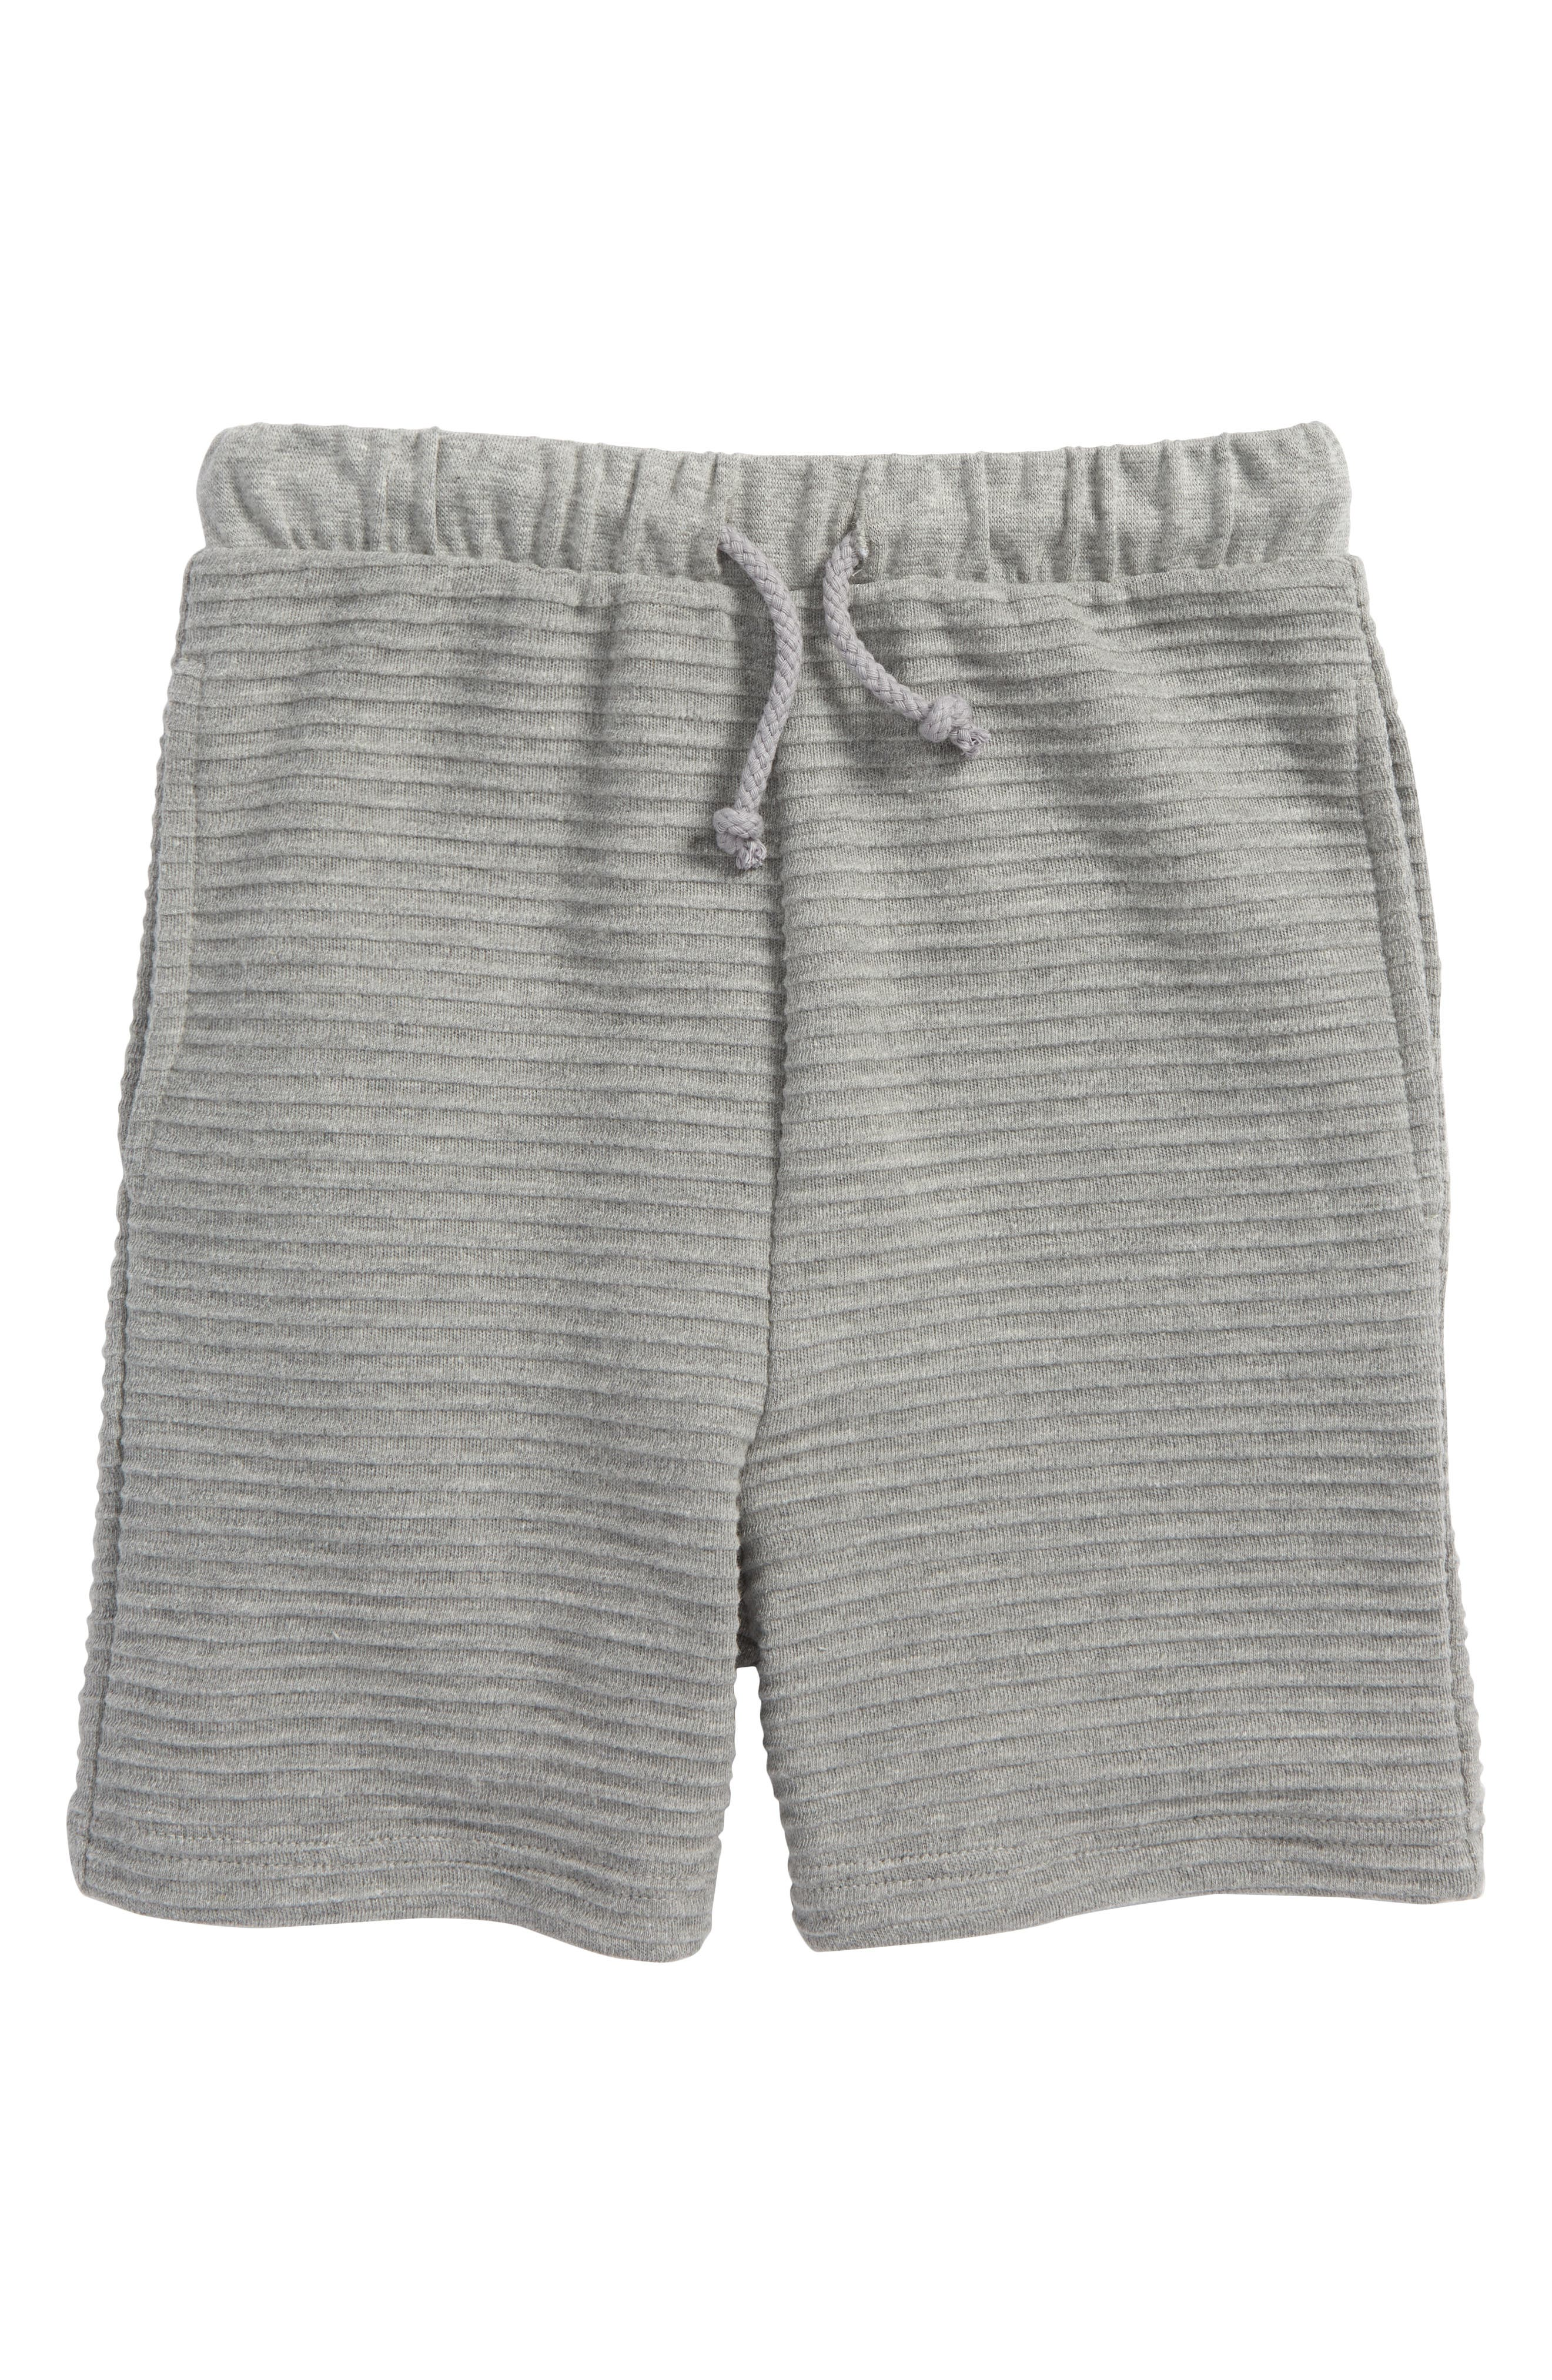 Freddie Knit Shorts,                         Main,                         color, GREY MELANGE